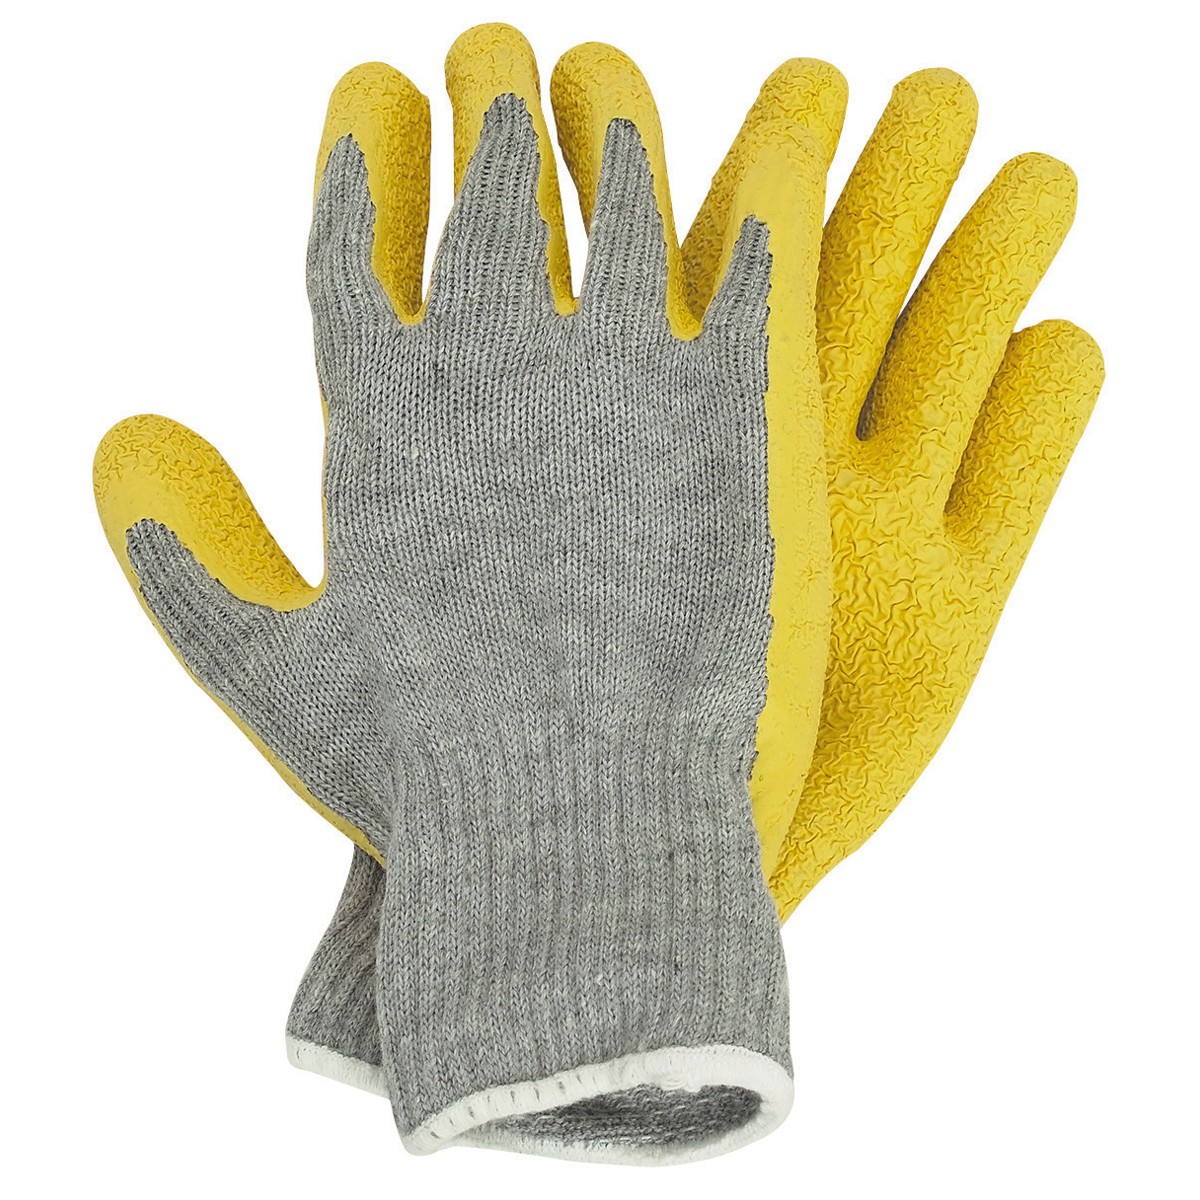 Western Safety Glove Large